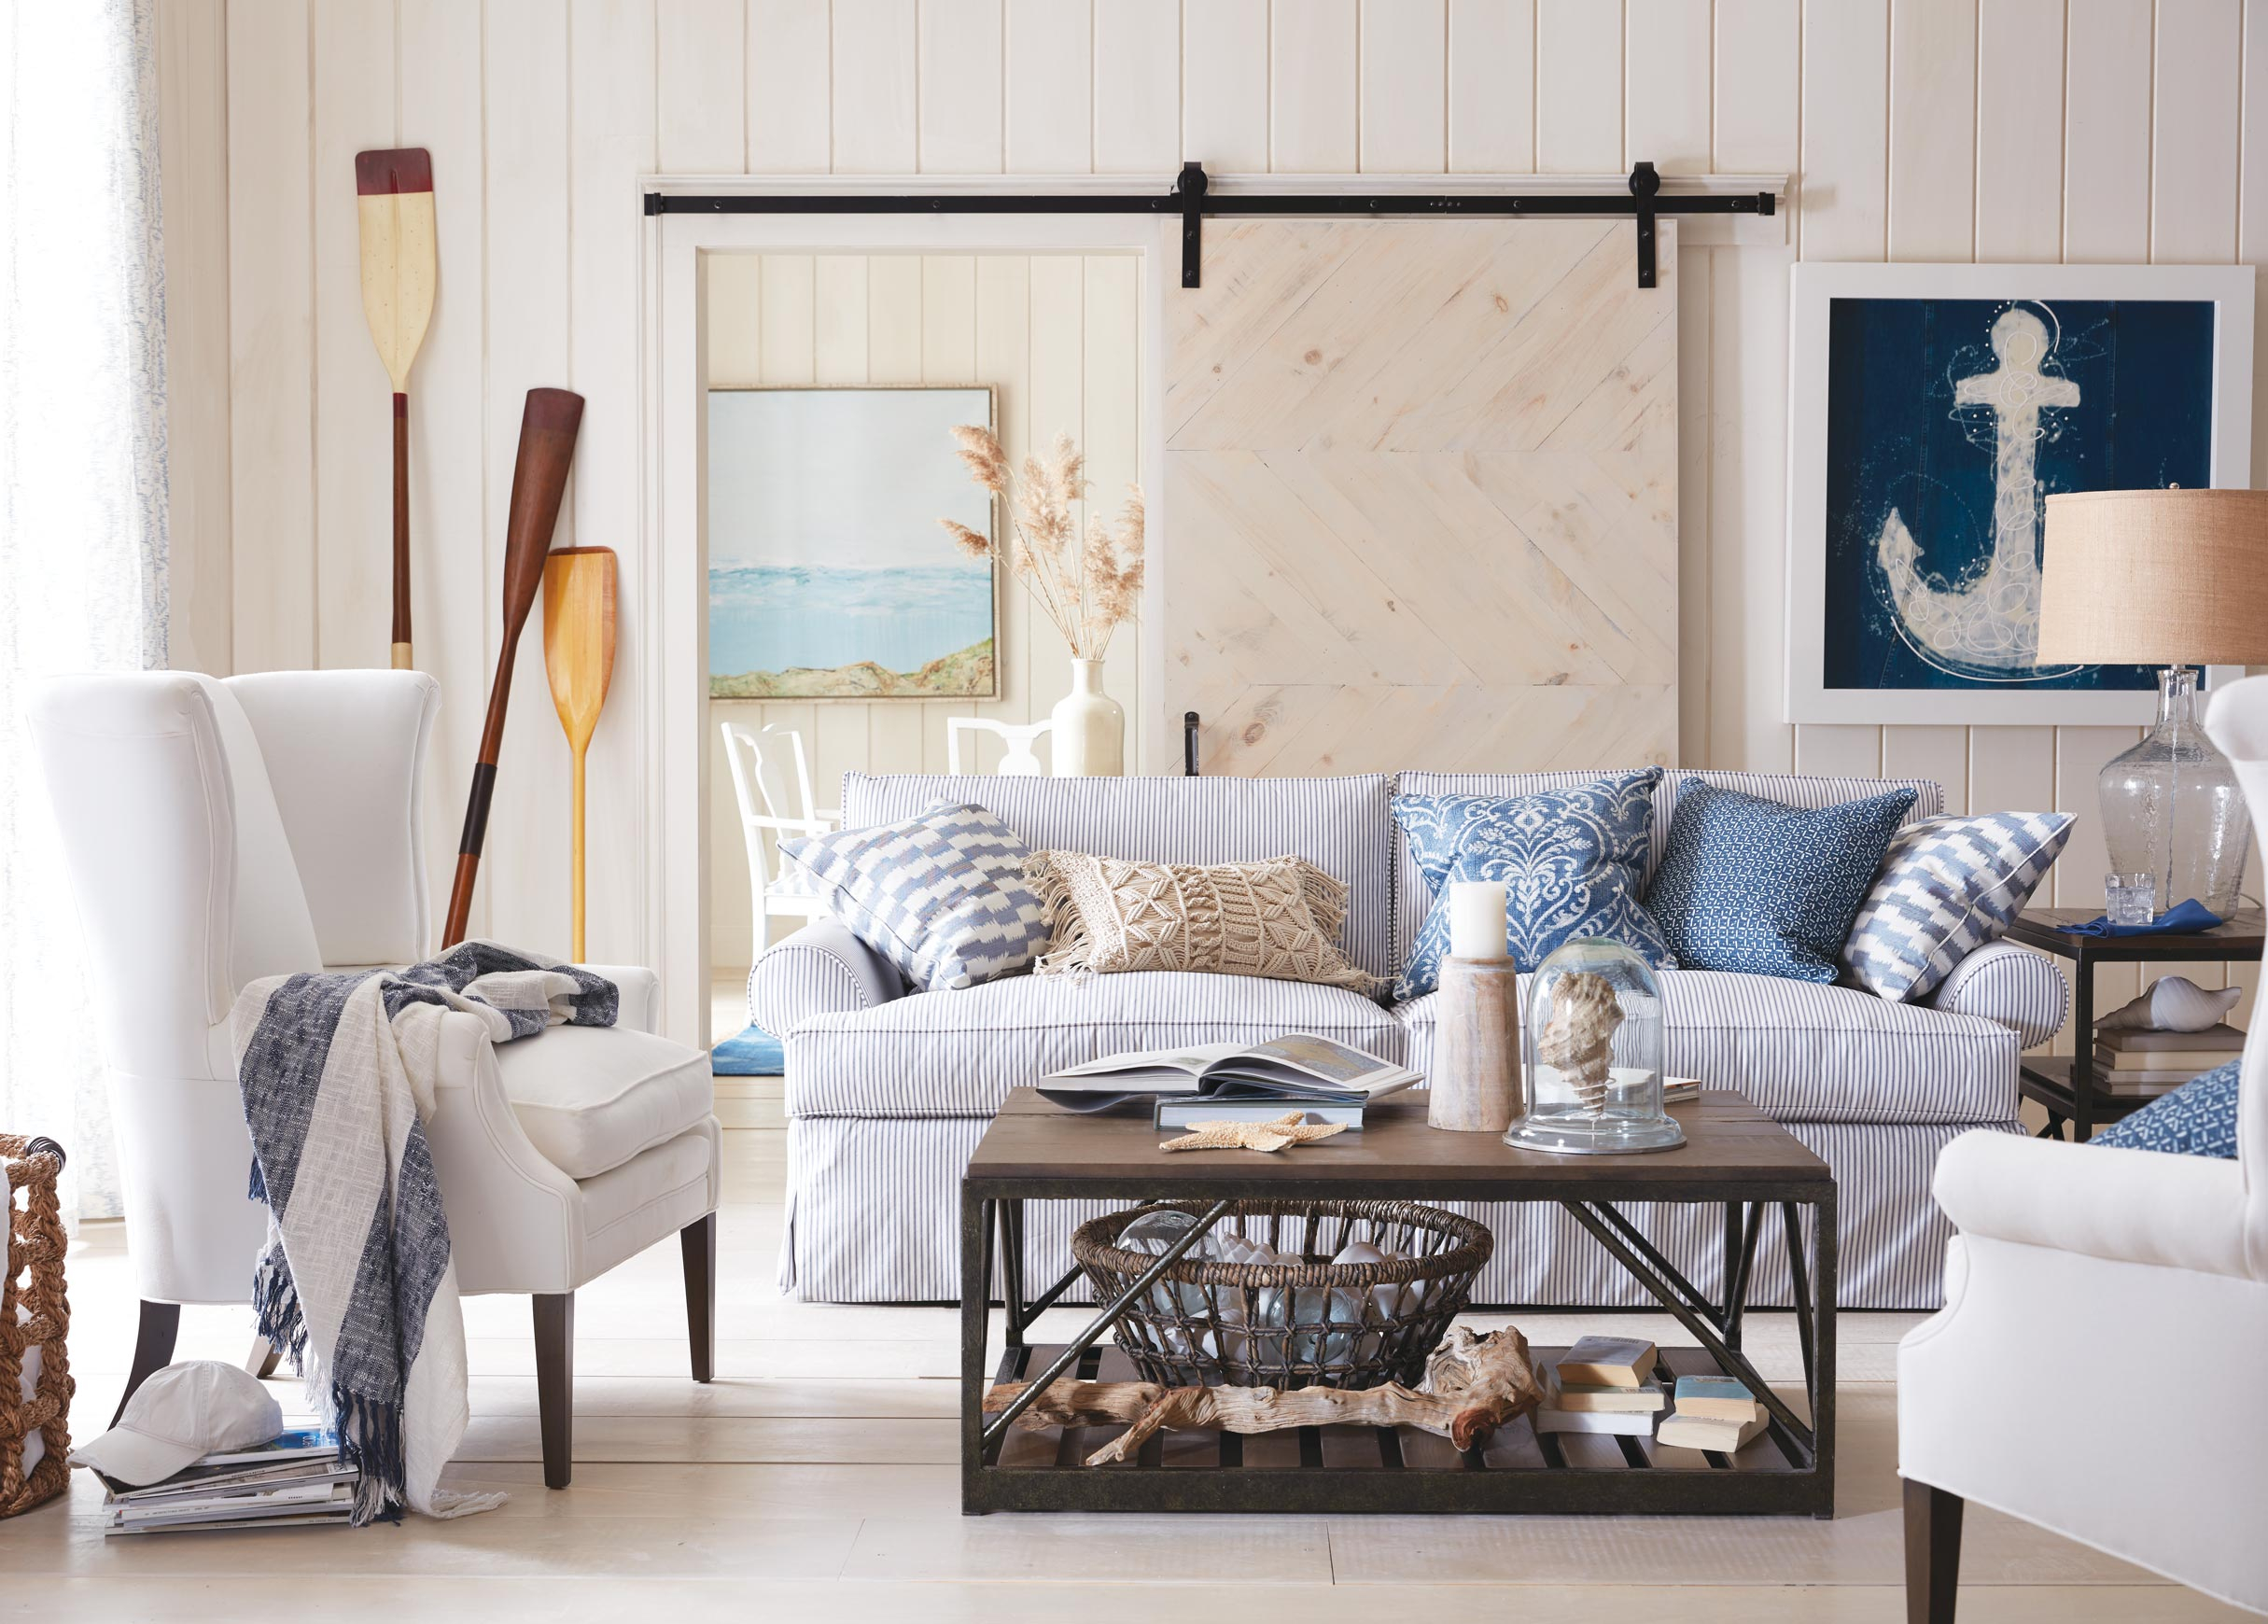 Nautical Nature Living Room Ethan Allen Ethan Allen within 12 Clever Ways How to Make Ethan Allen Living Room Sets